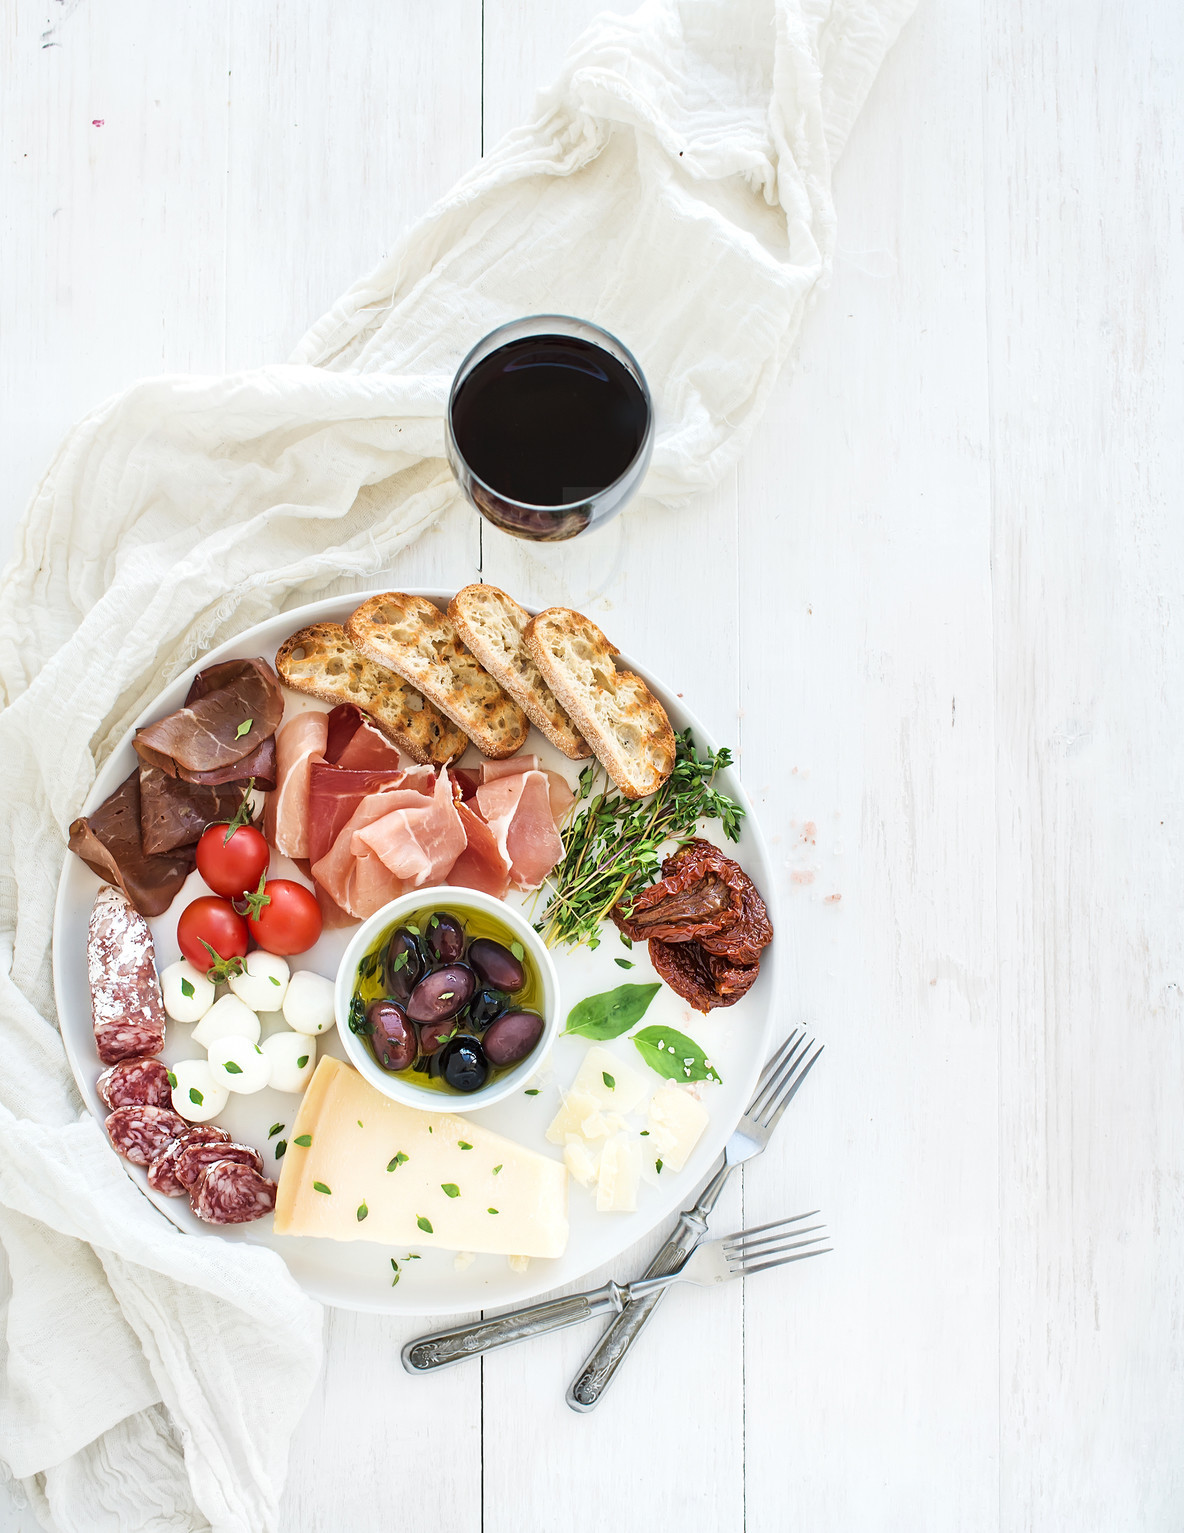 Wine appetizer set  Cherry tomatoes  parmesan cheese  meat variety  bread slices  dried tomatoes  olives and basil on round ceramic plate over white wood backdrop